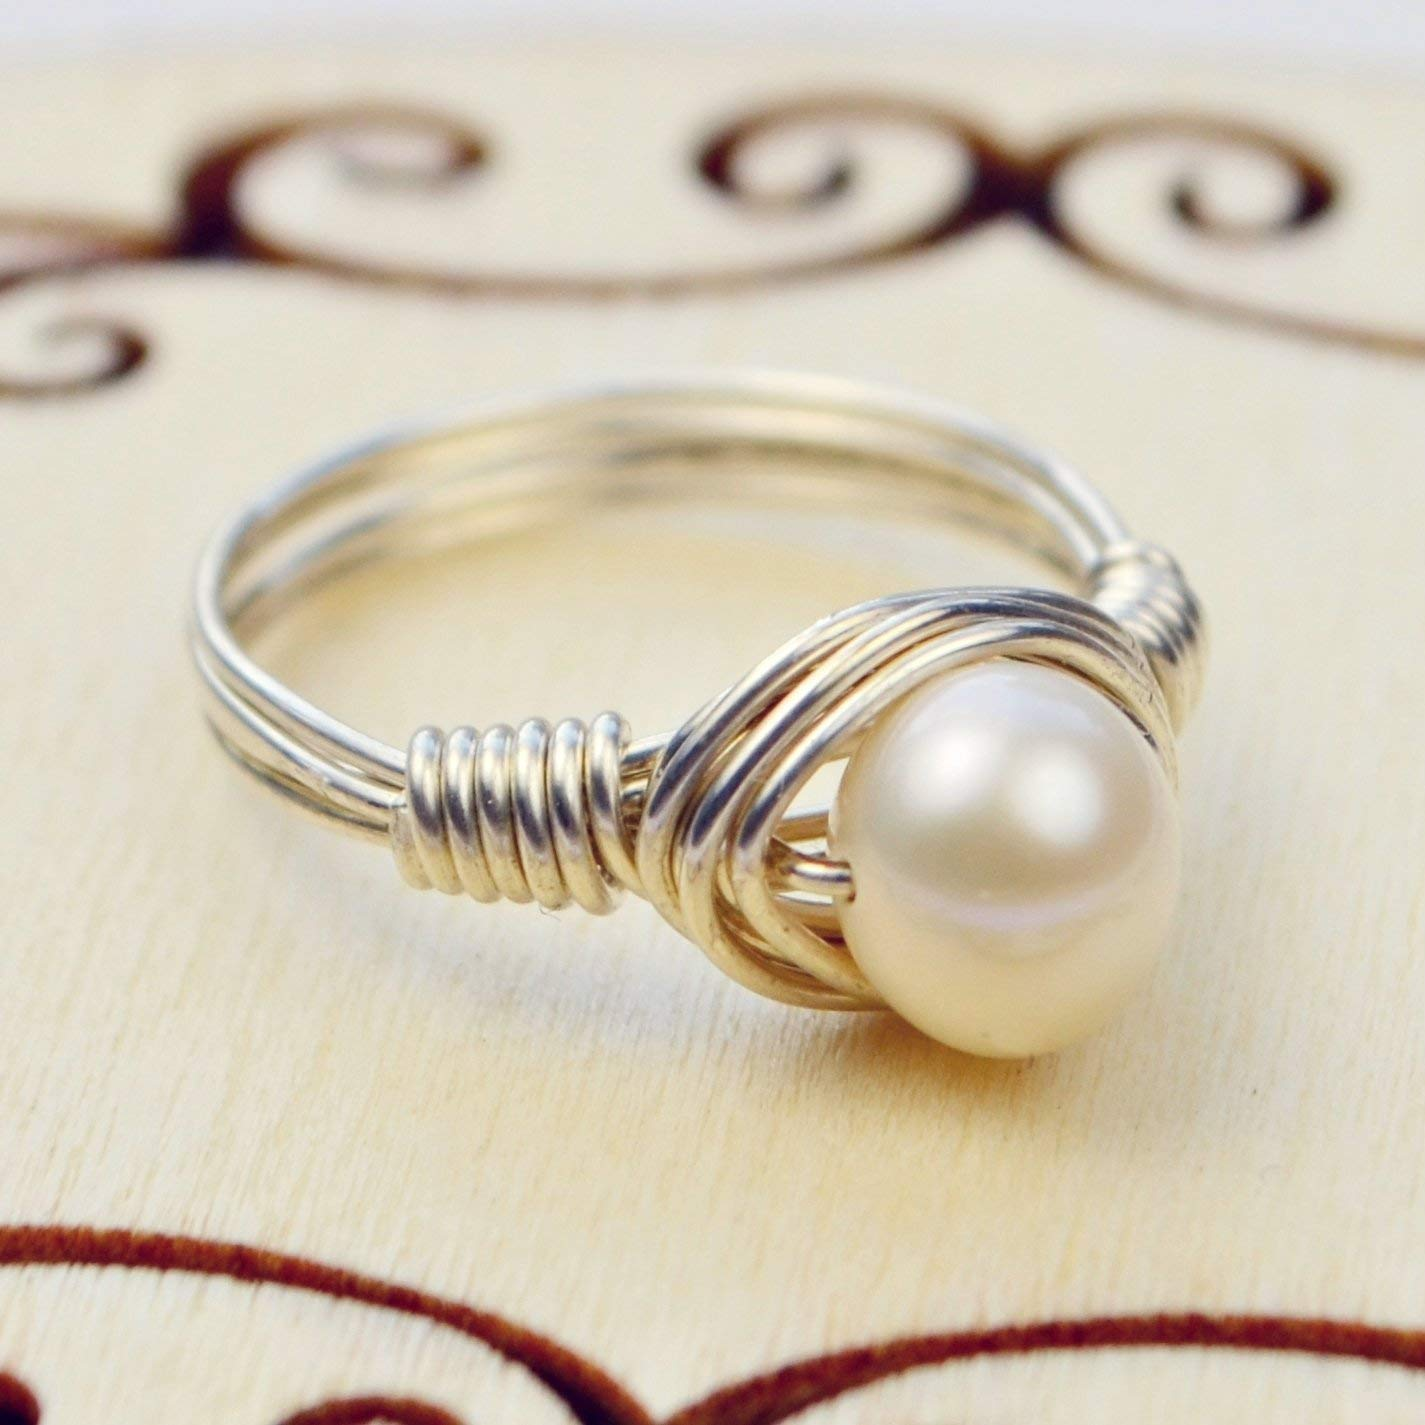 Freshwater Pearl Sterling Silver or Gold Filled Wire Wrapped Ring- Custom Made to Your Size 4-14